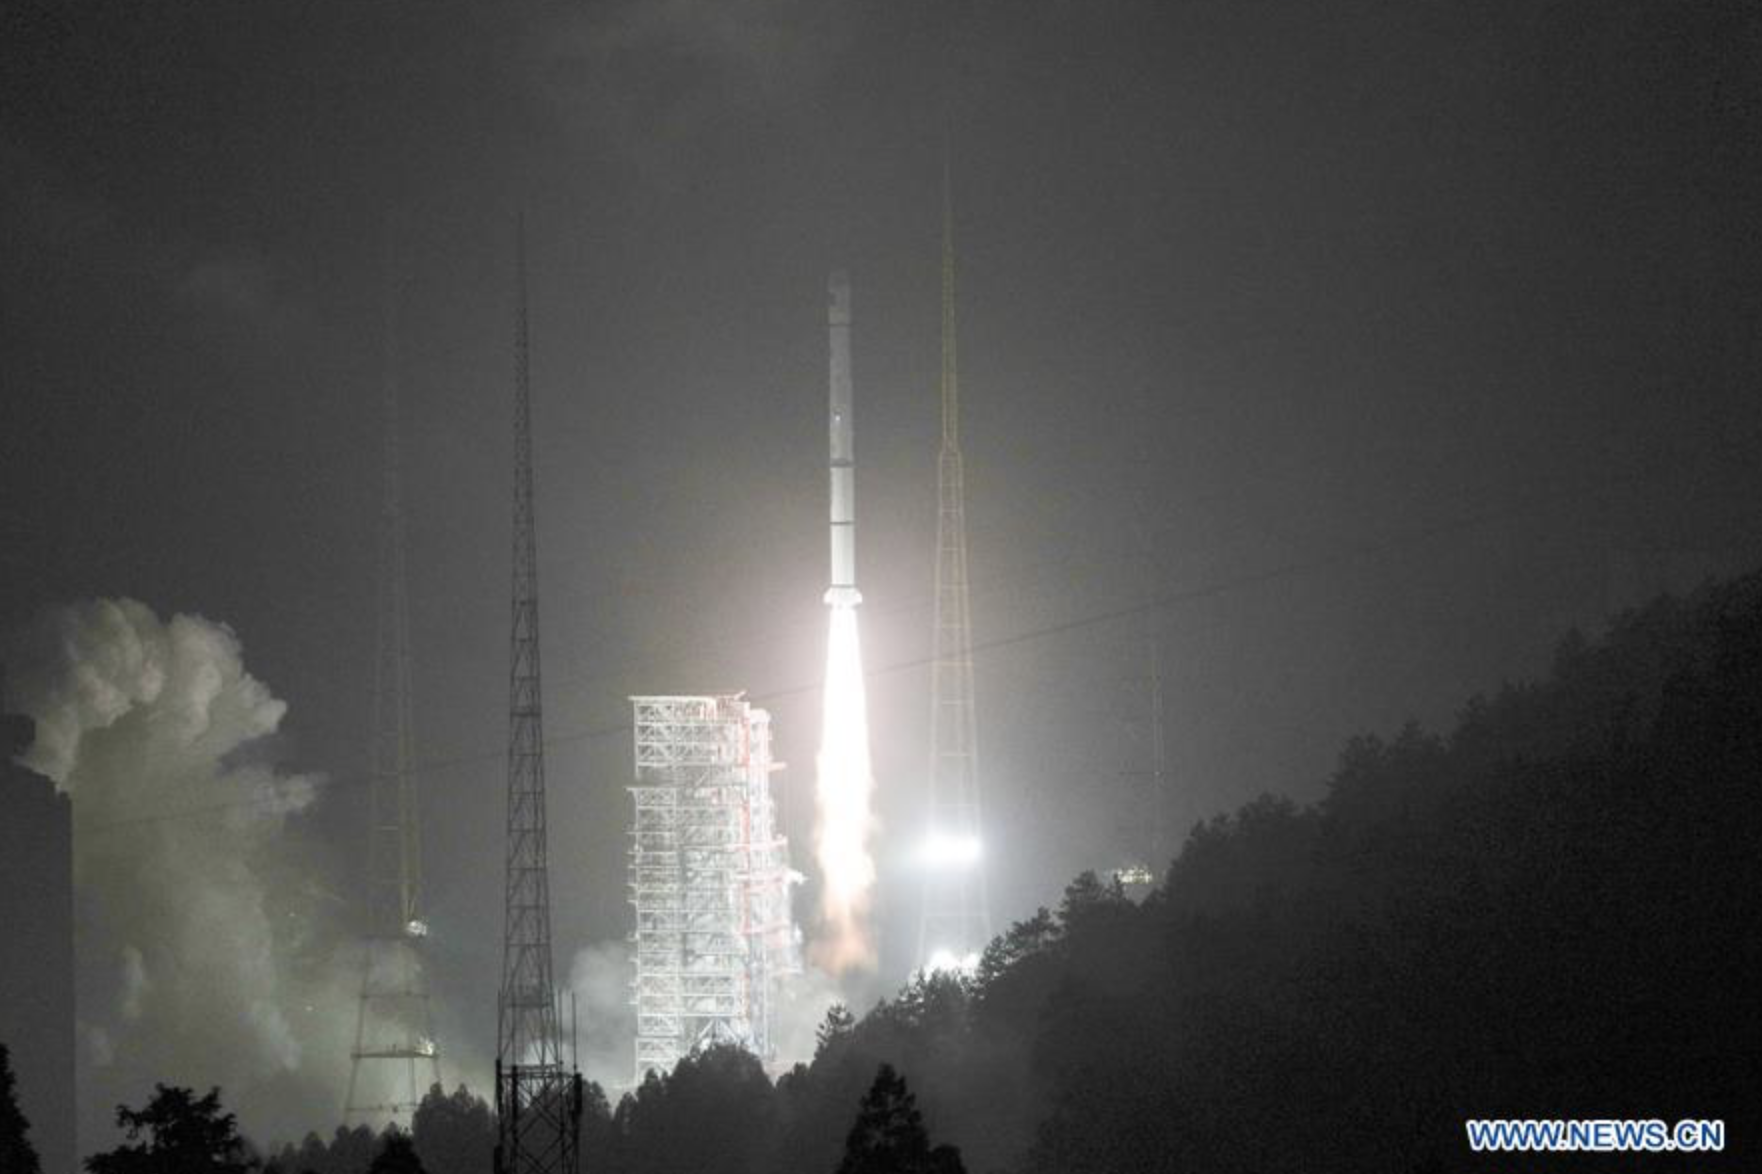 China Launches Another BeiDou Navigation Satellite